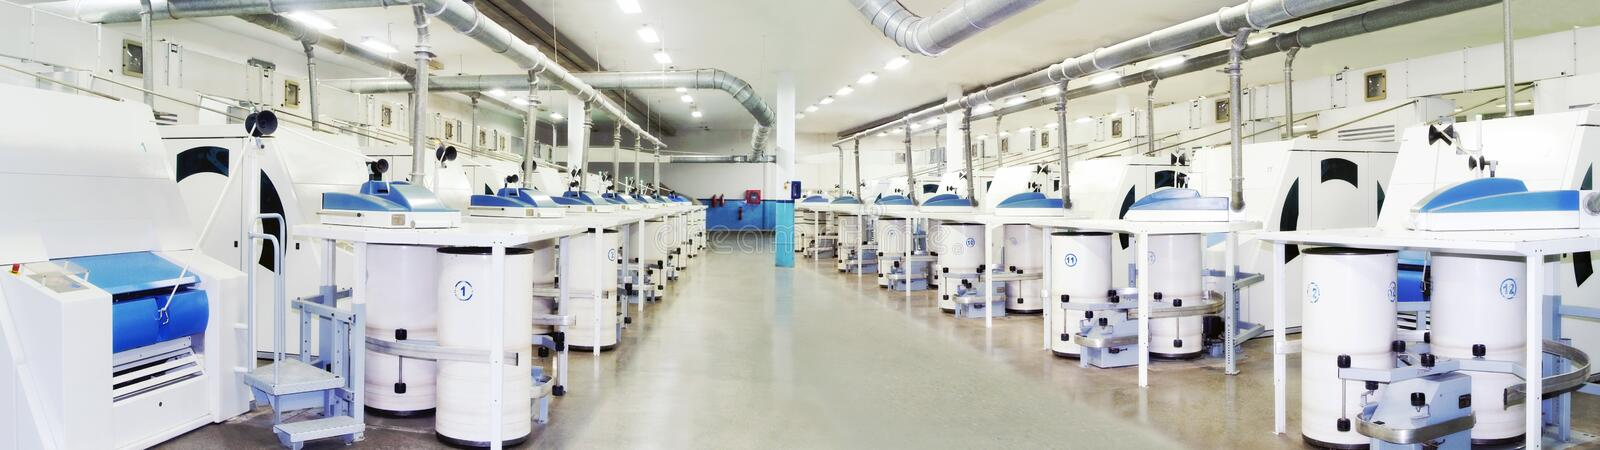 Panoramic view of Carding Department. Cotton spinning preparatory machines in Carding Department, Textile Industry royalty free stock photo